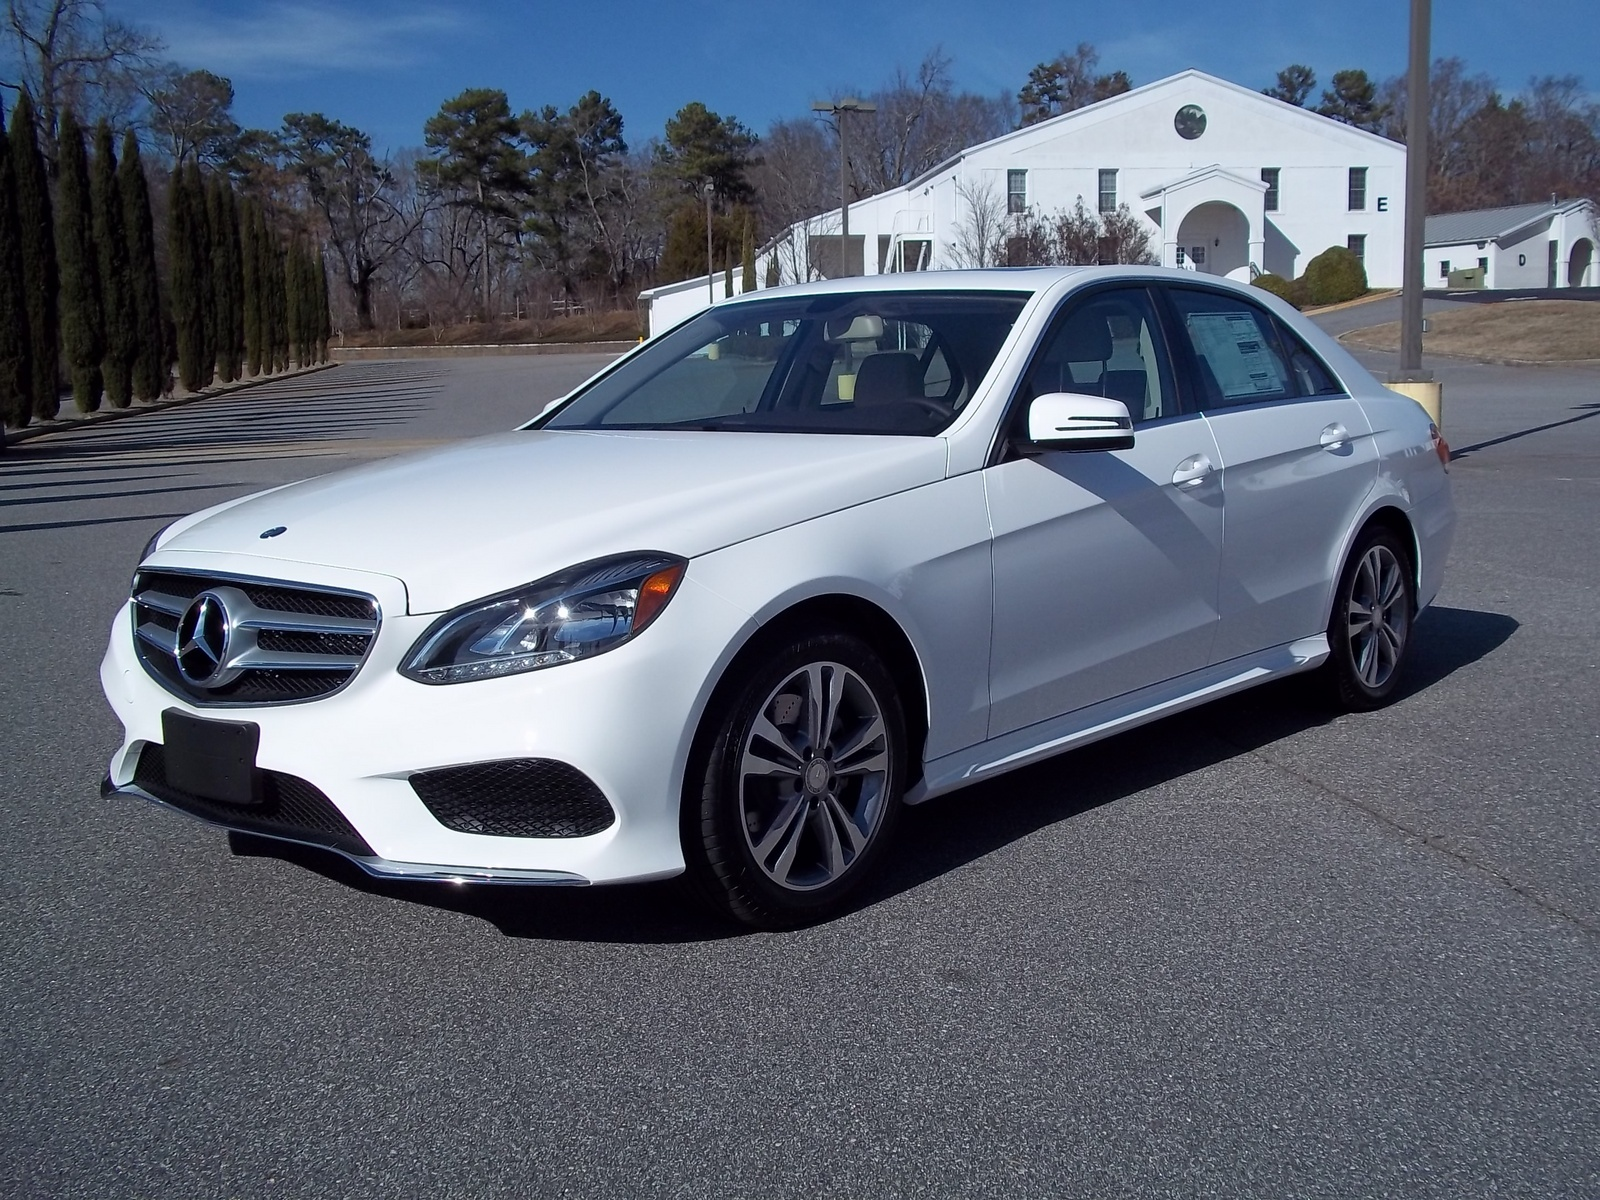 New 2015 2016 mercedes benz e class for sale cargurus for Benz mercedes for sale